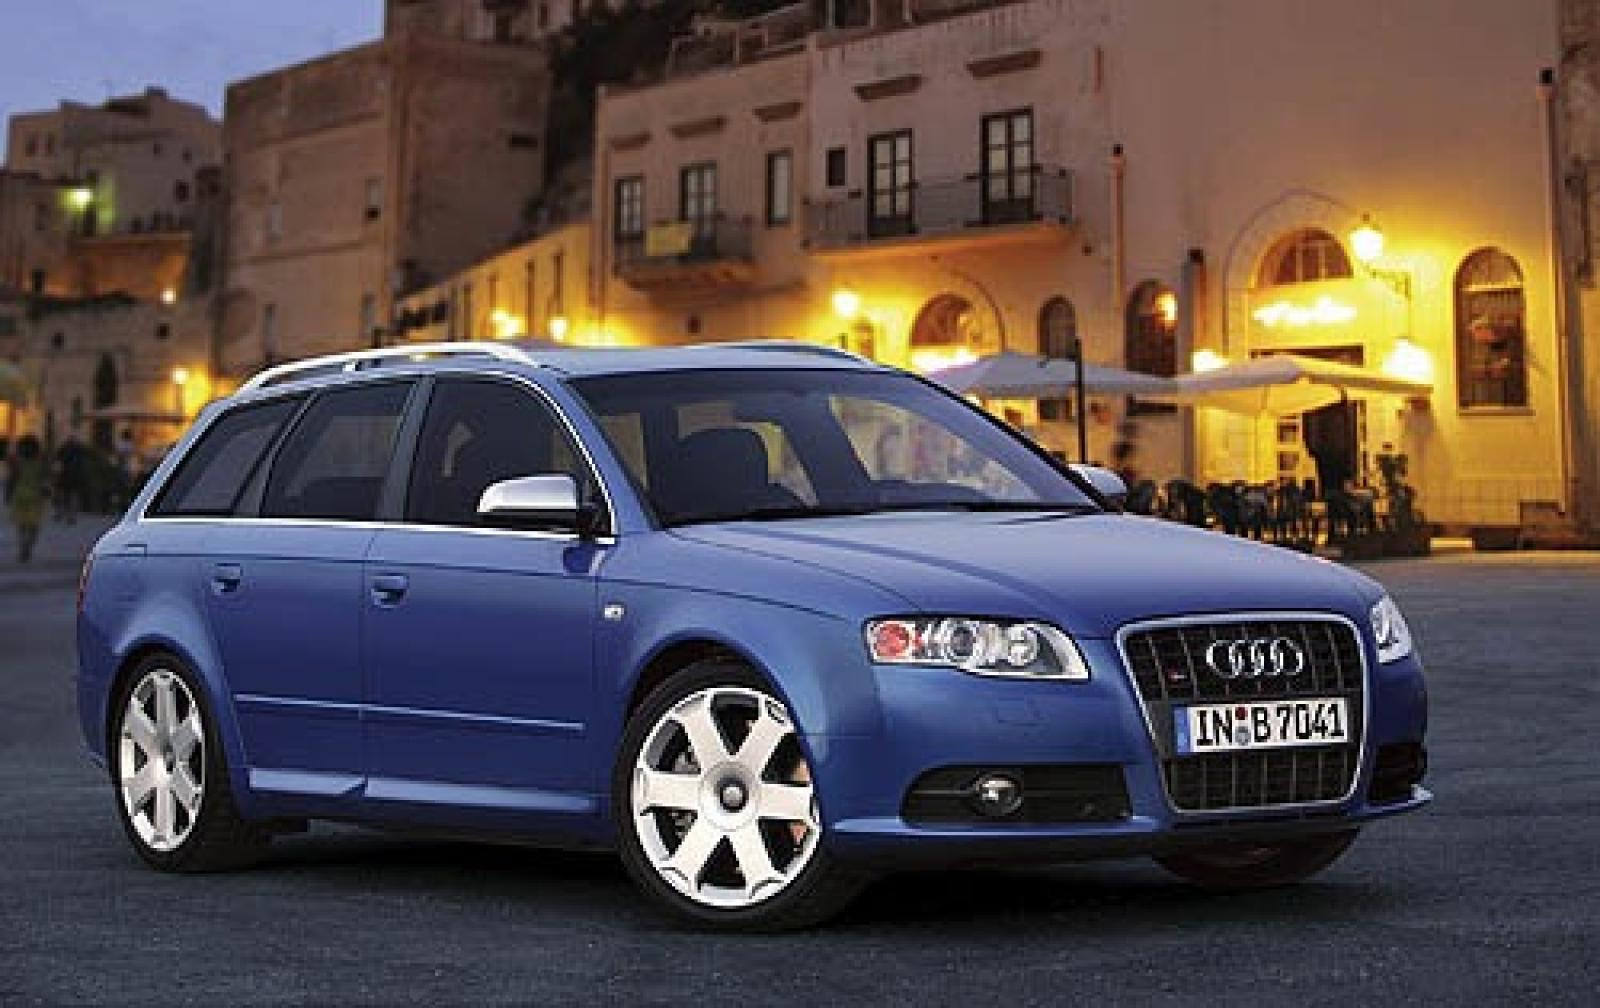 2005 Audi S4 - Information and photos - Zomb Drive